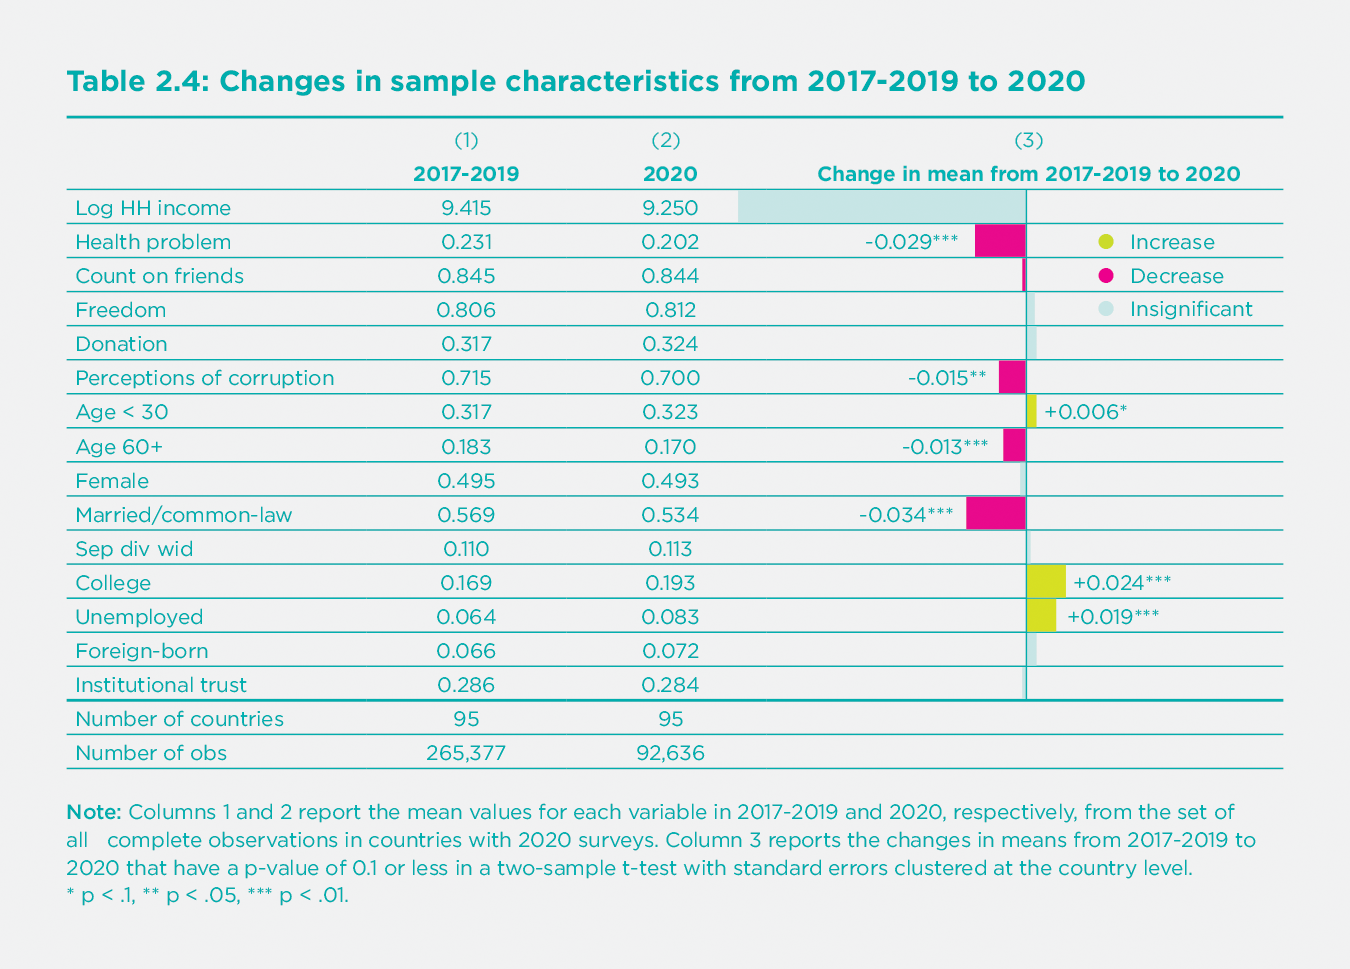 Table 2.4 Changes from 2017-2019 to 2020 in mean values of key influences